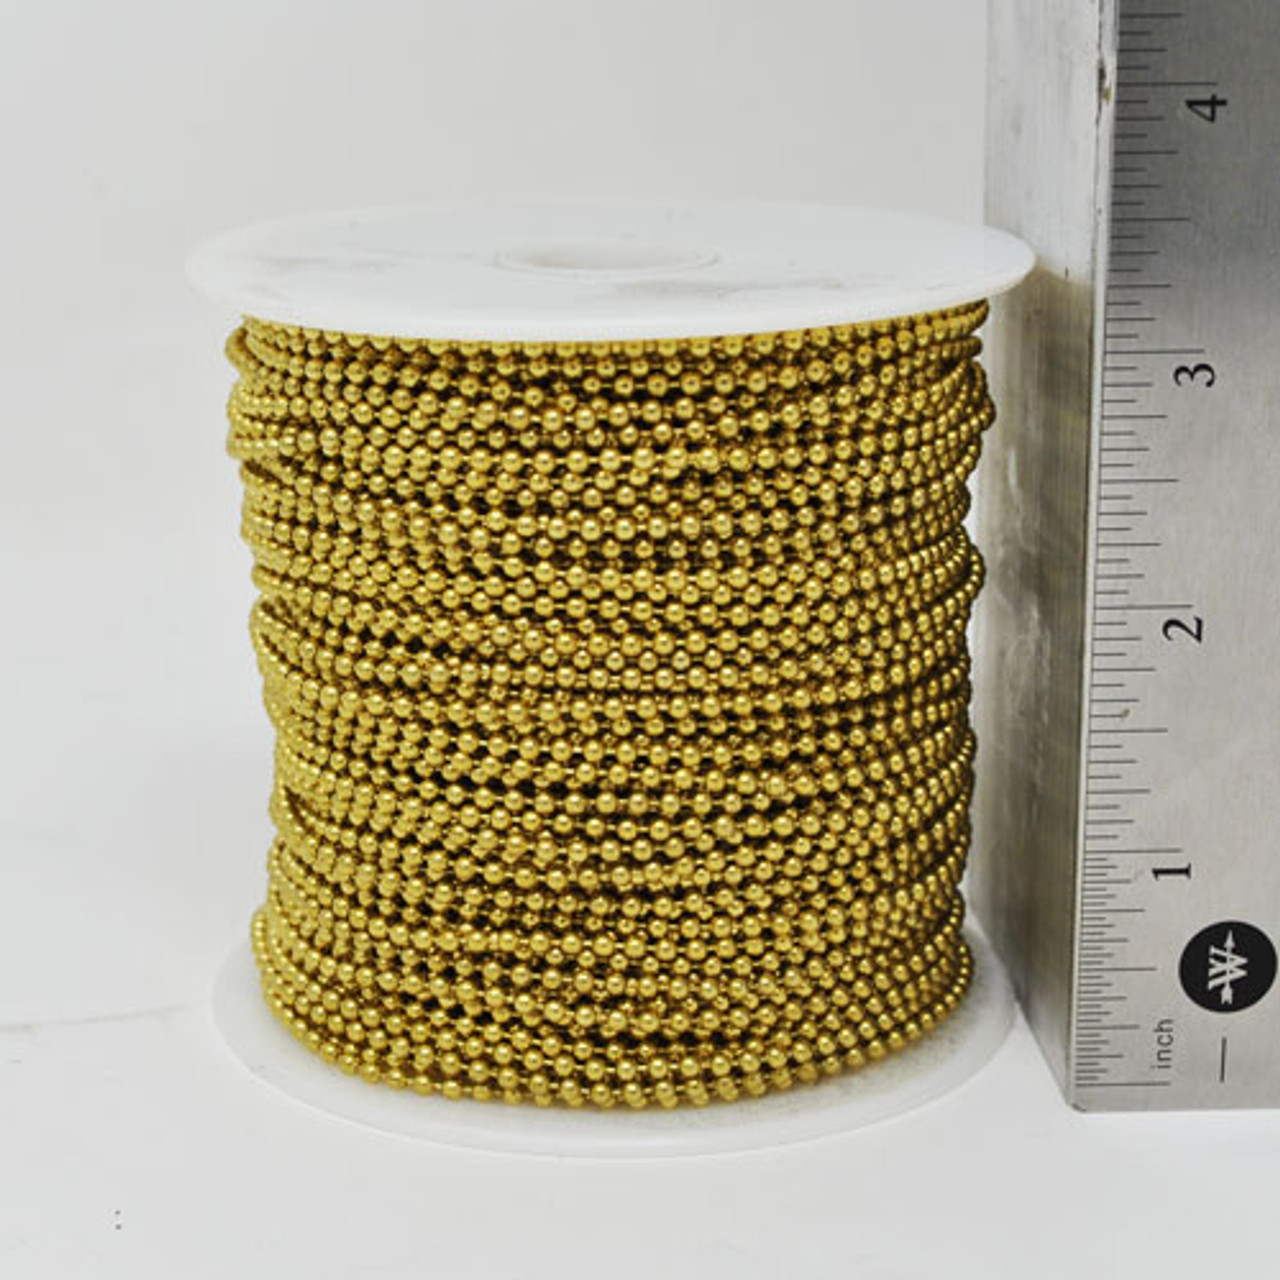 #3 or 2.4mm diameter yellow brass ball chain spool with a length of 250 feet. This is common size for crafter's and non industrial purchasers.